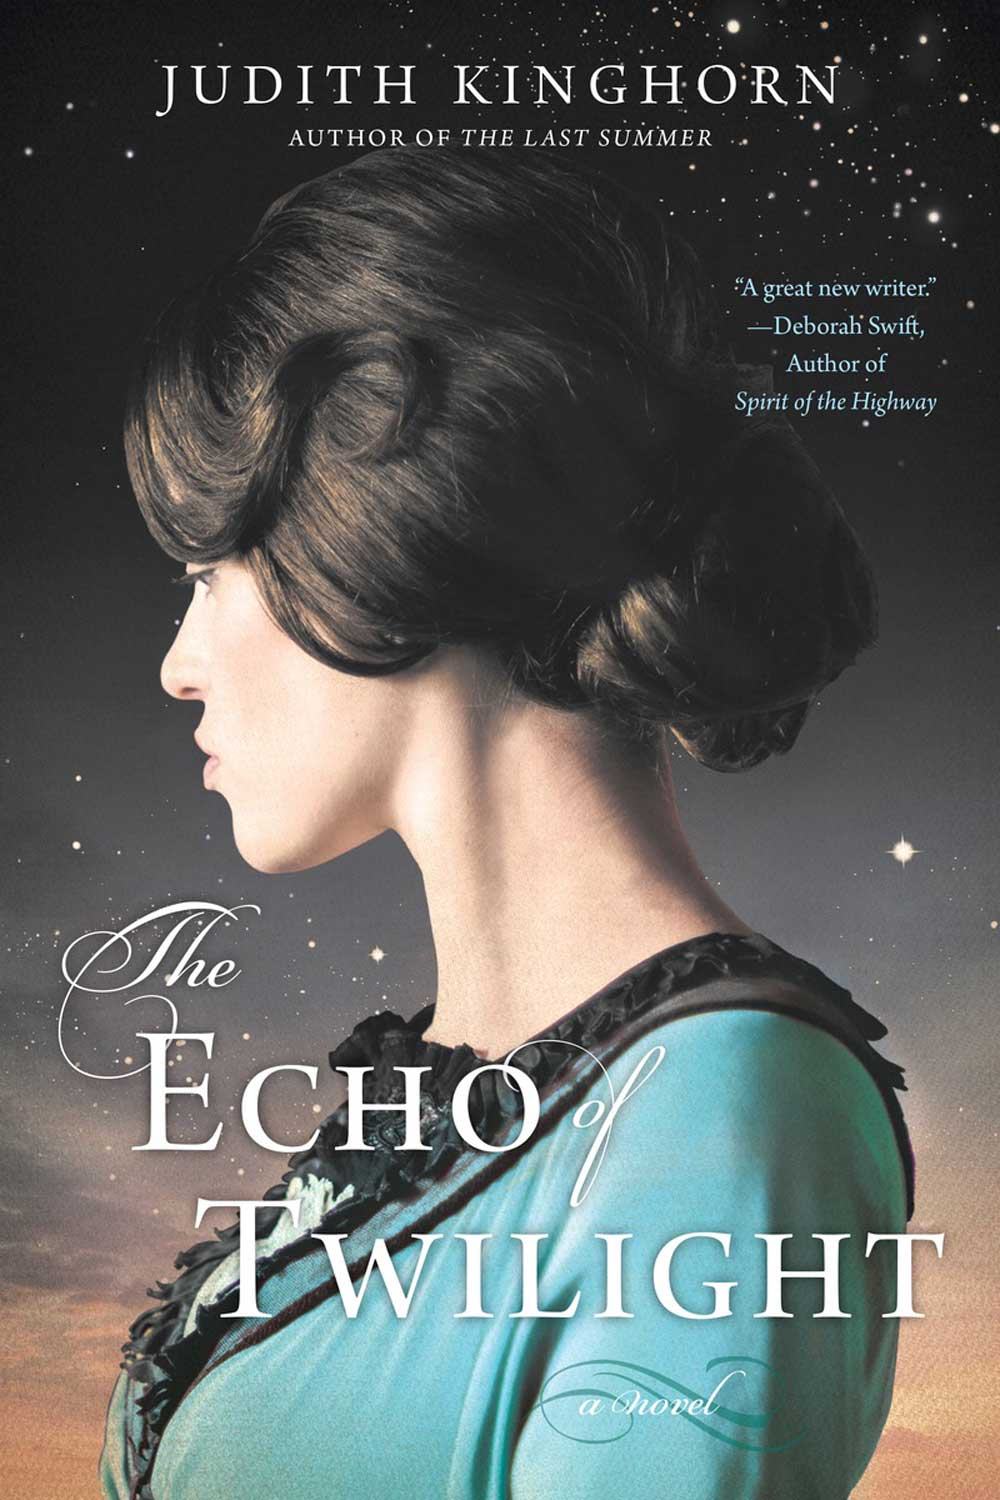 judith_kinghorn_the_echo_of_twilight